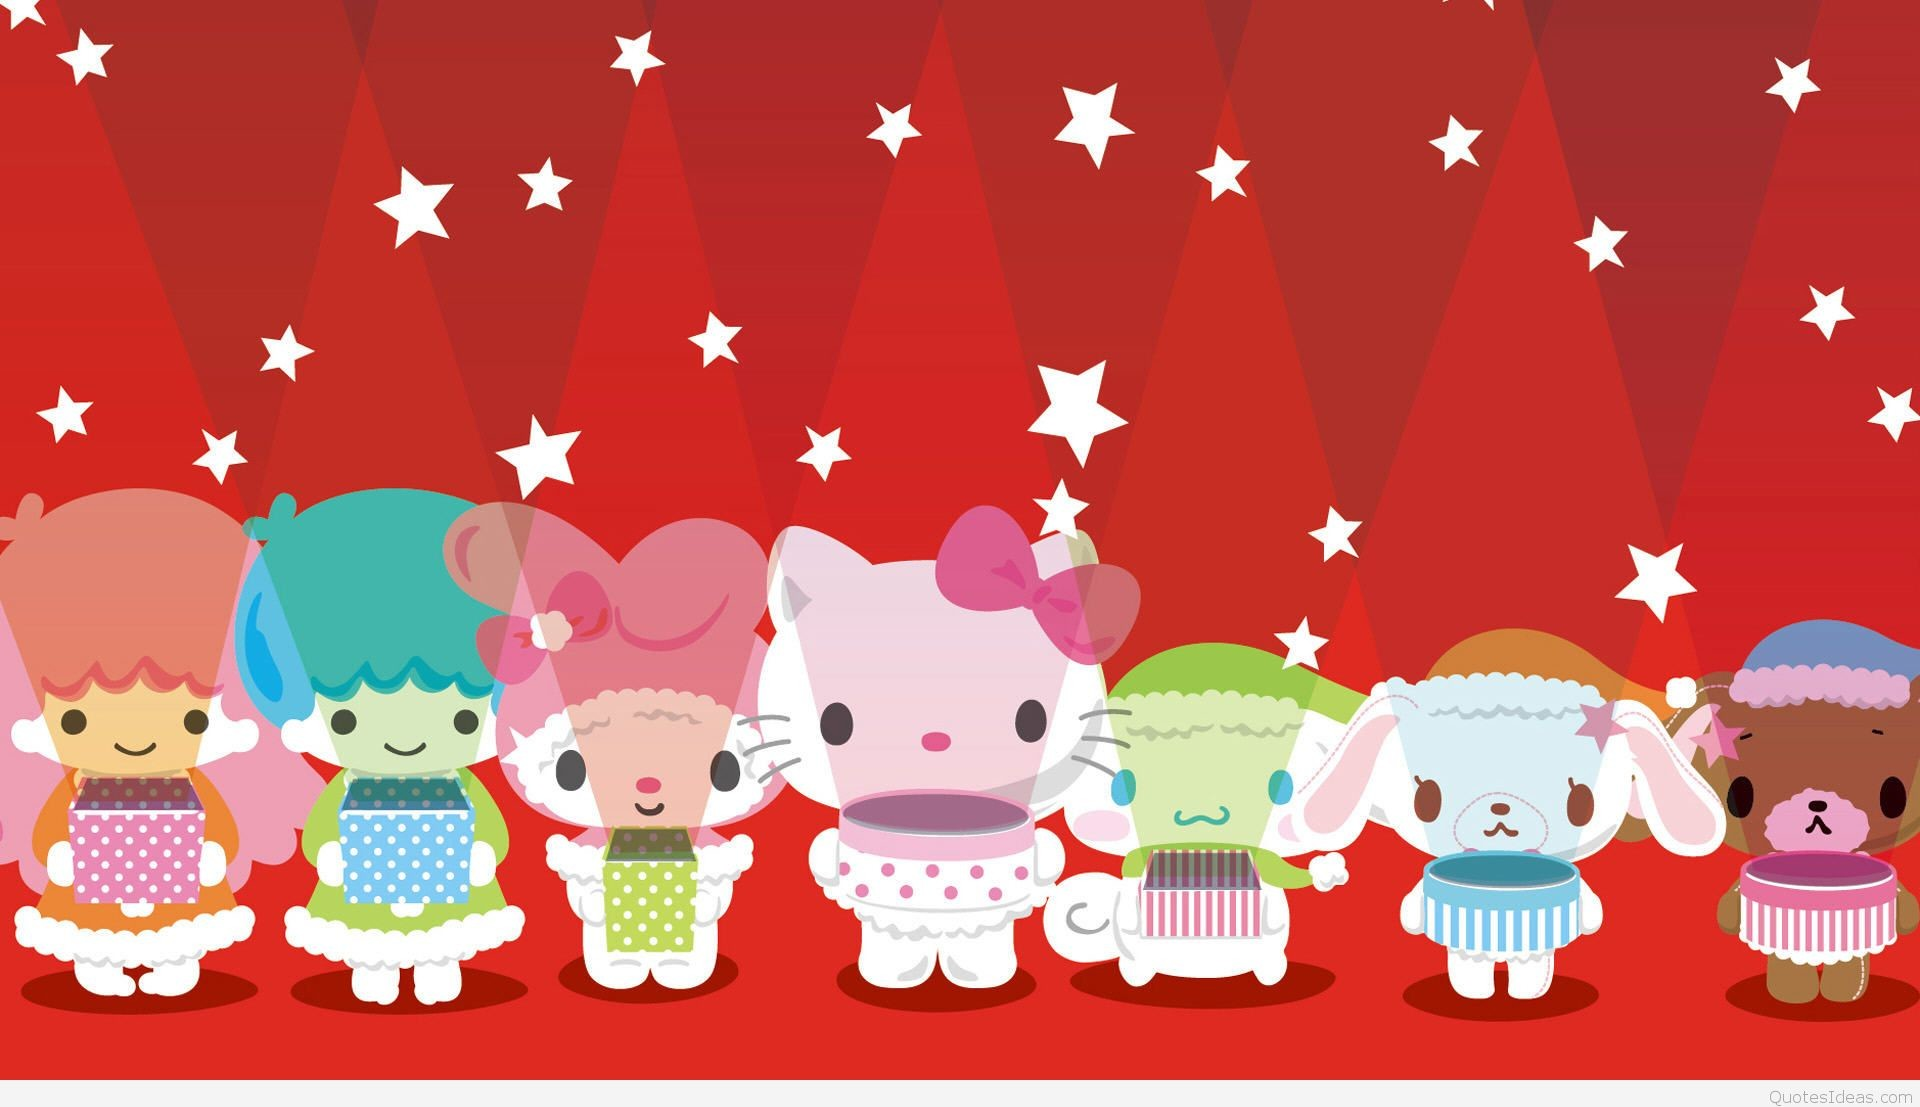 Most Inspiring Wallpaper Hello Kitty Friend - 712690-hello-kitty-christmas-wallpapers-1920x1107-free-download  Picture_975296.jpg